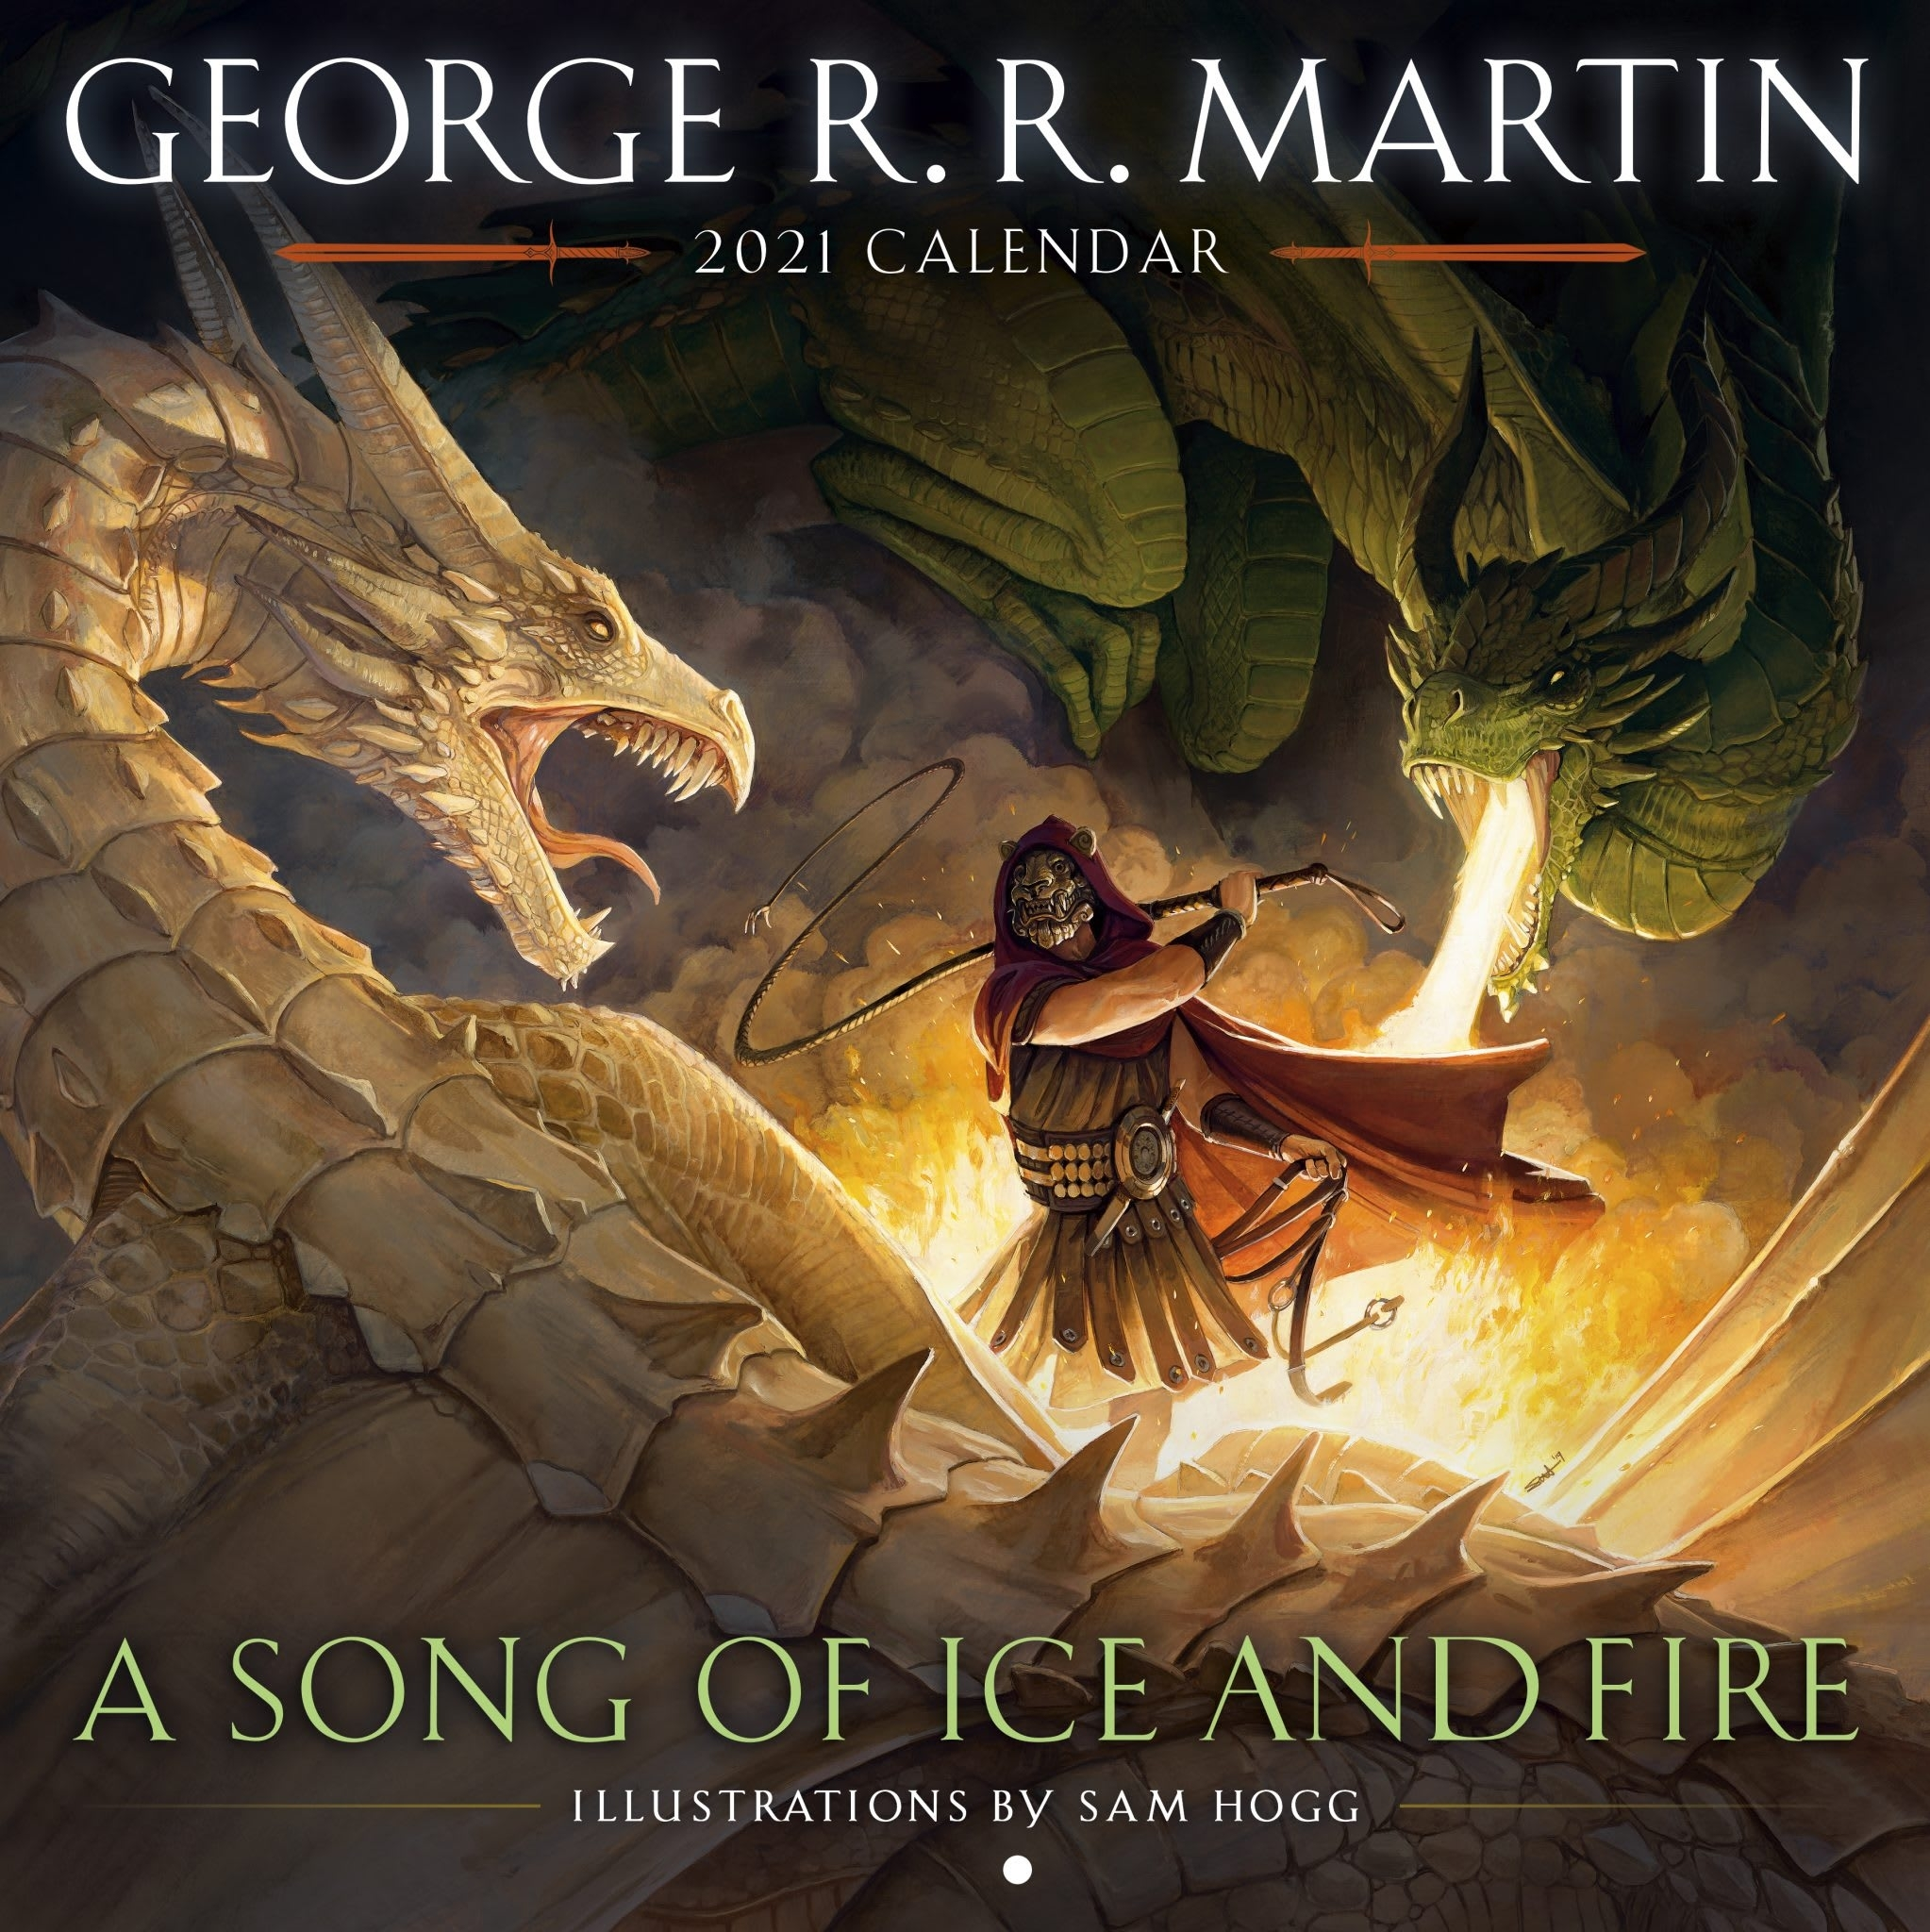 Check Out The Gorgeous Cover Of The 2021 A Song Of Ice And